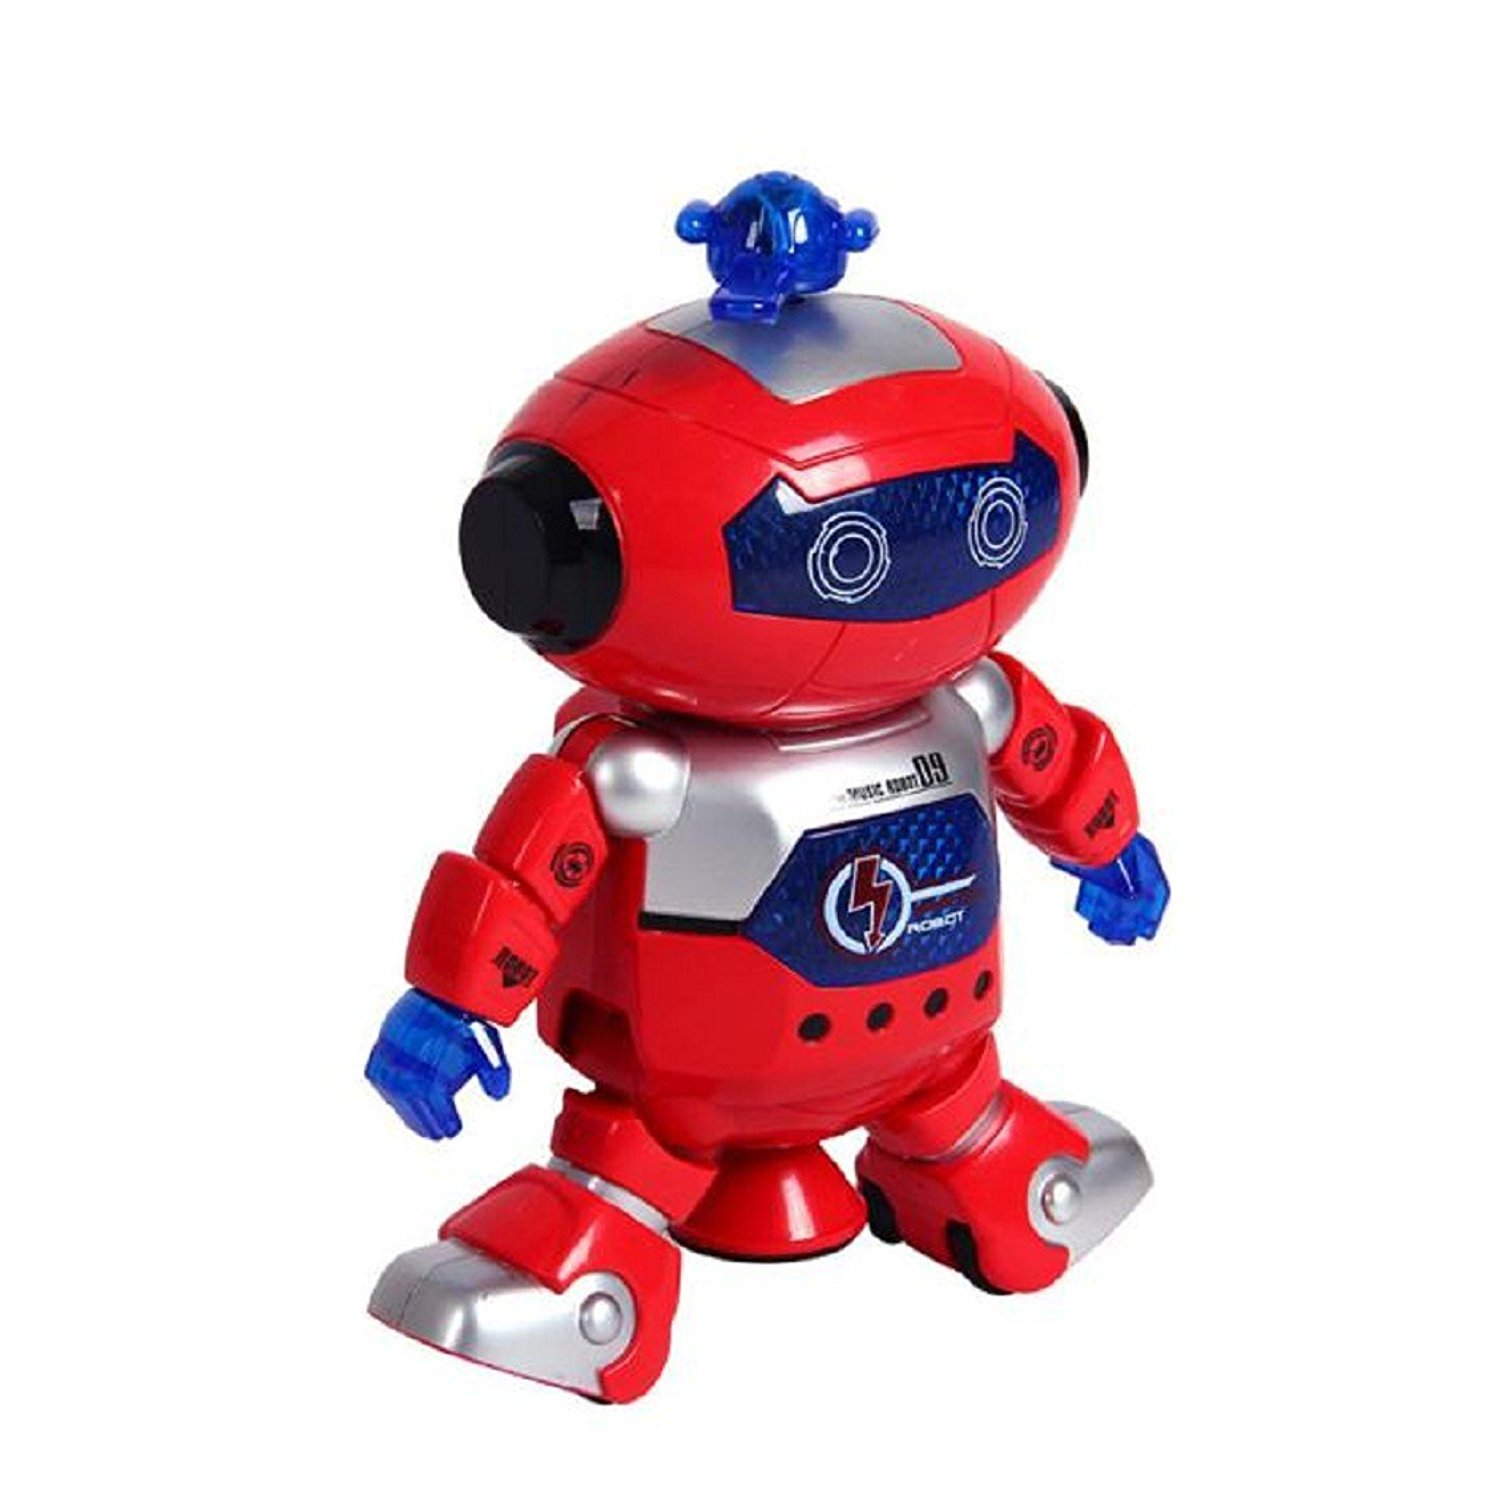 Cheap Fun Electronic Projects Find Deals On Robot Hobby Circuits Free Circuit Robotics Project Get Quotations Naladoo Dancing Robert Toys With Music Lightening Gift For Kids Children